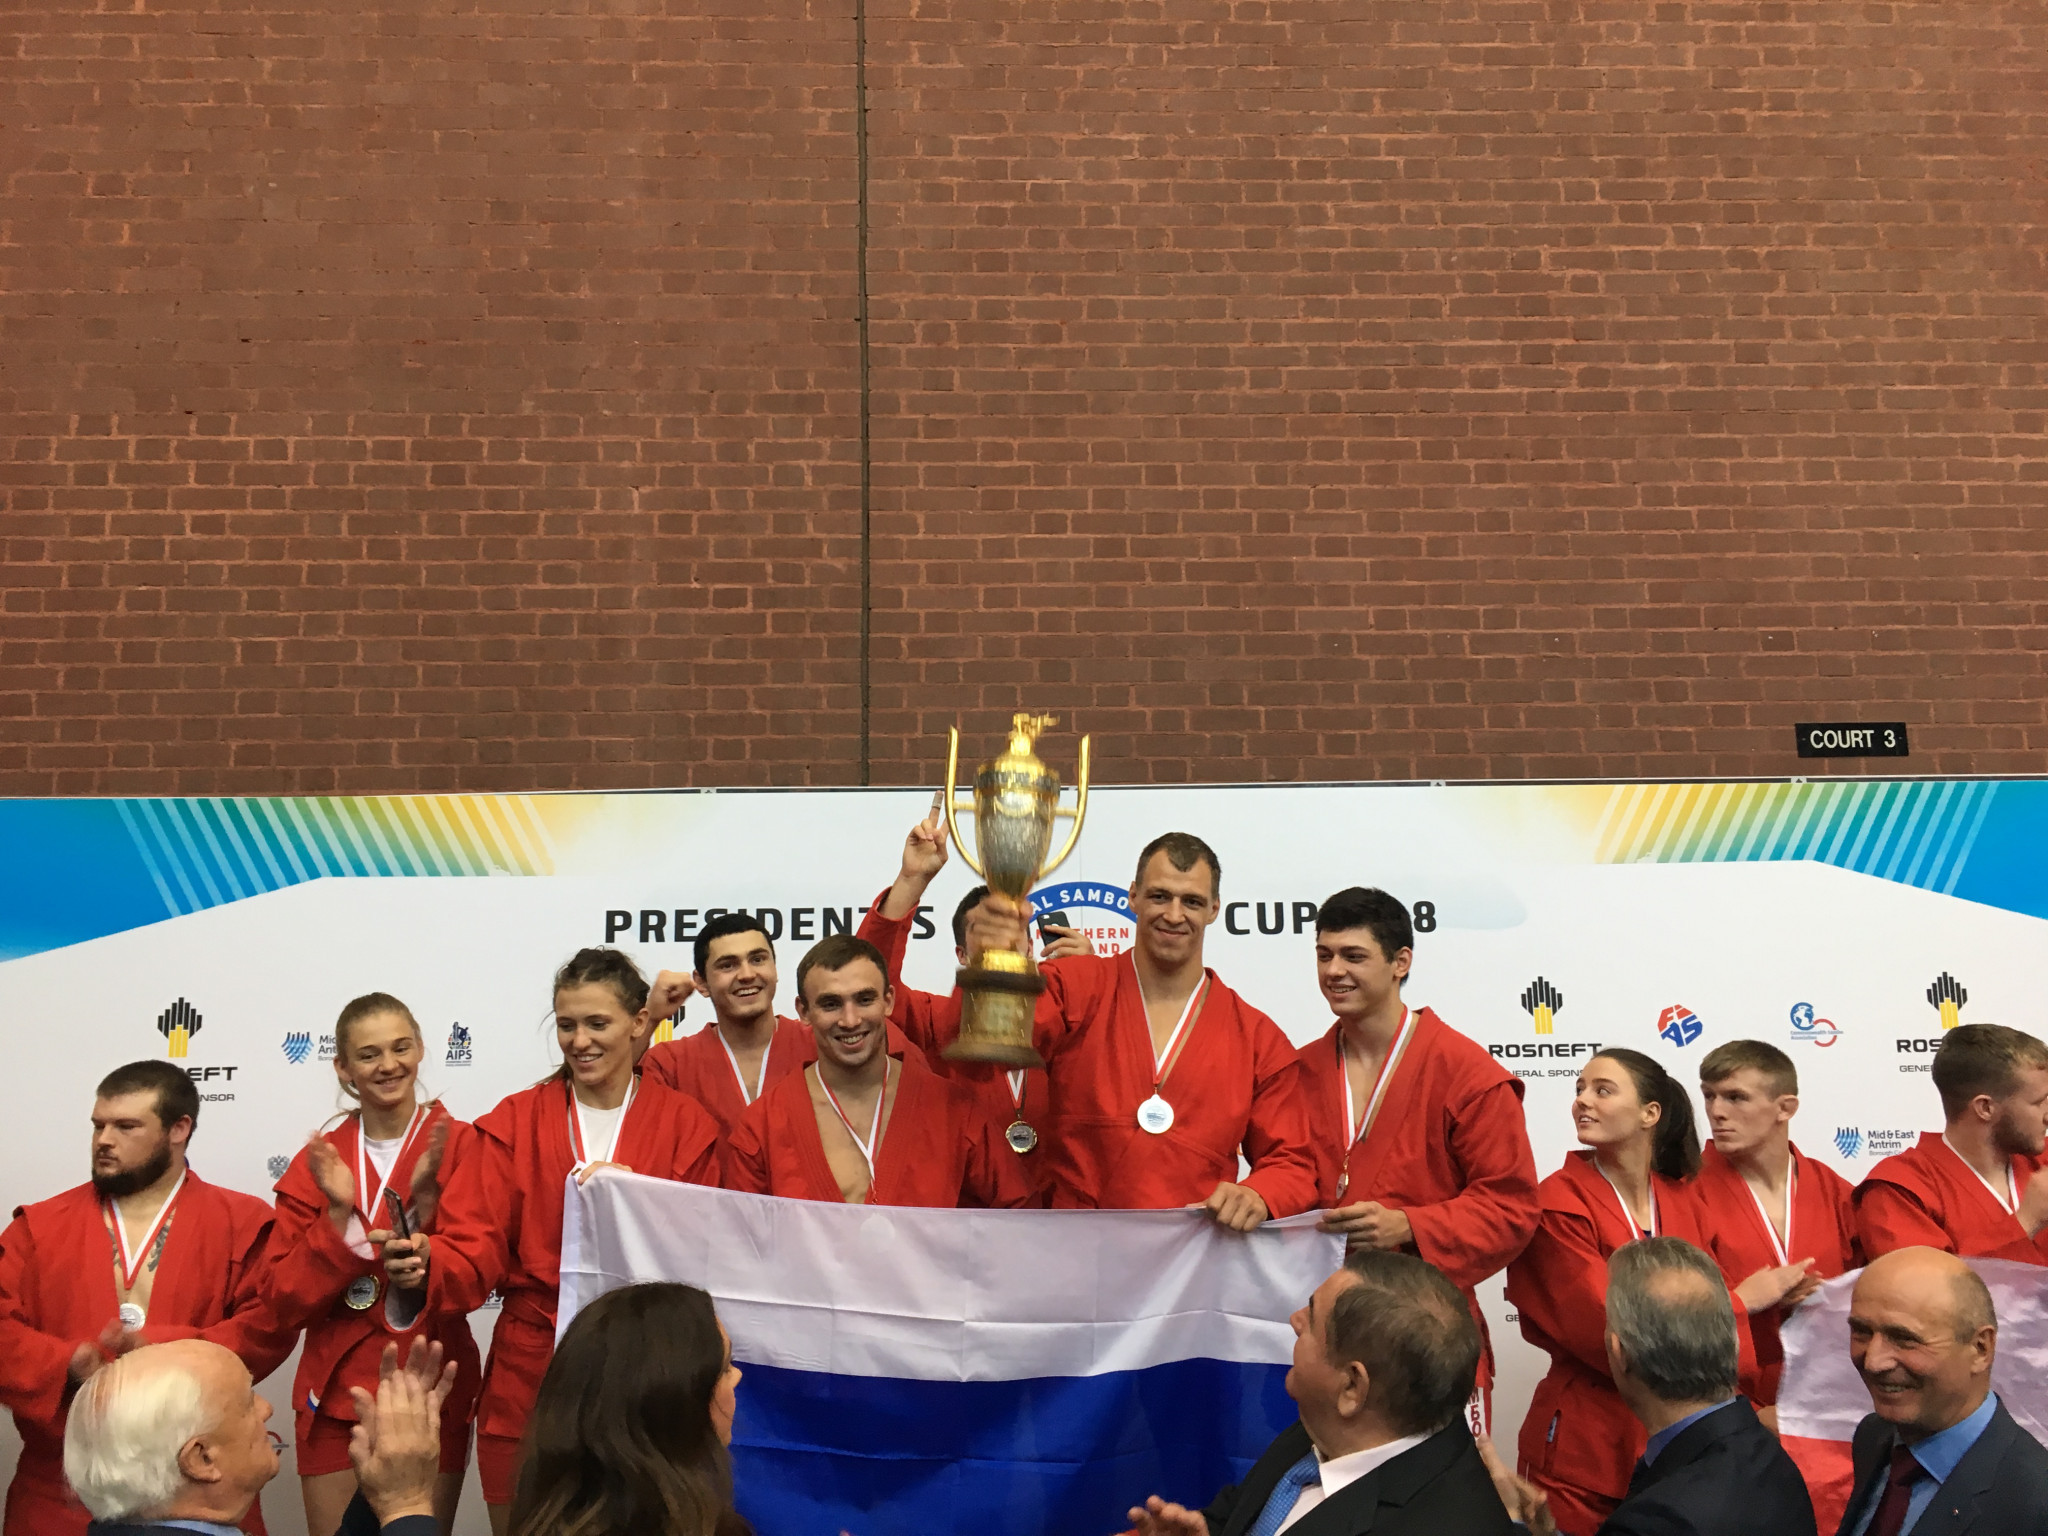 Russia won the overall President's Cup title today by beating the United States and Canada in the final ©ITG